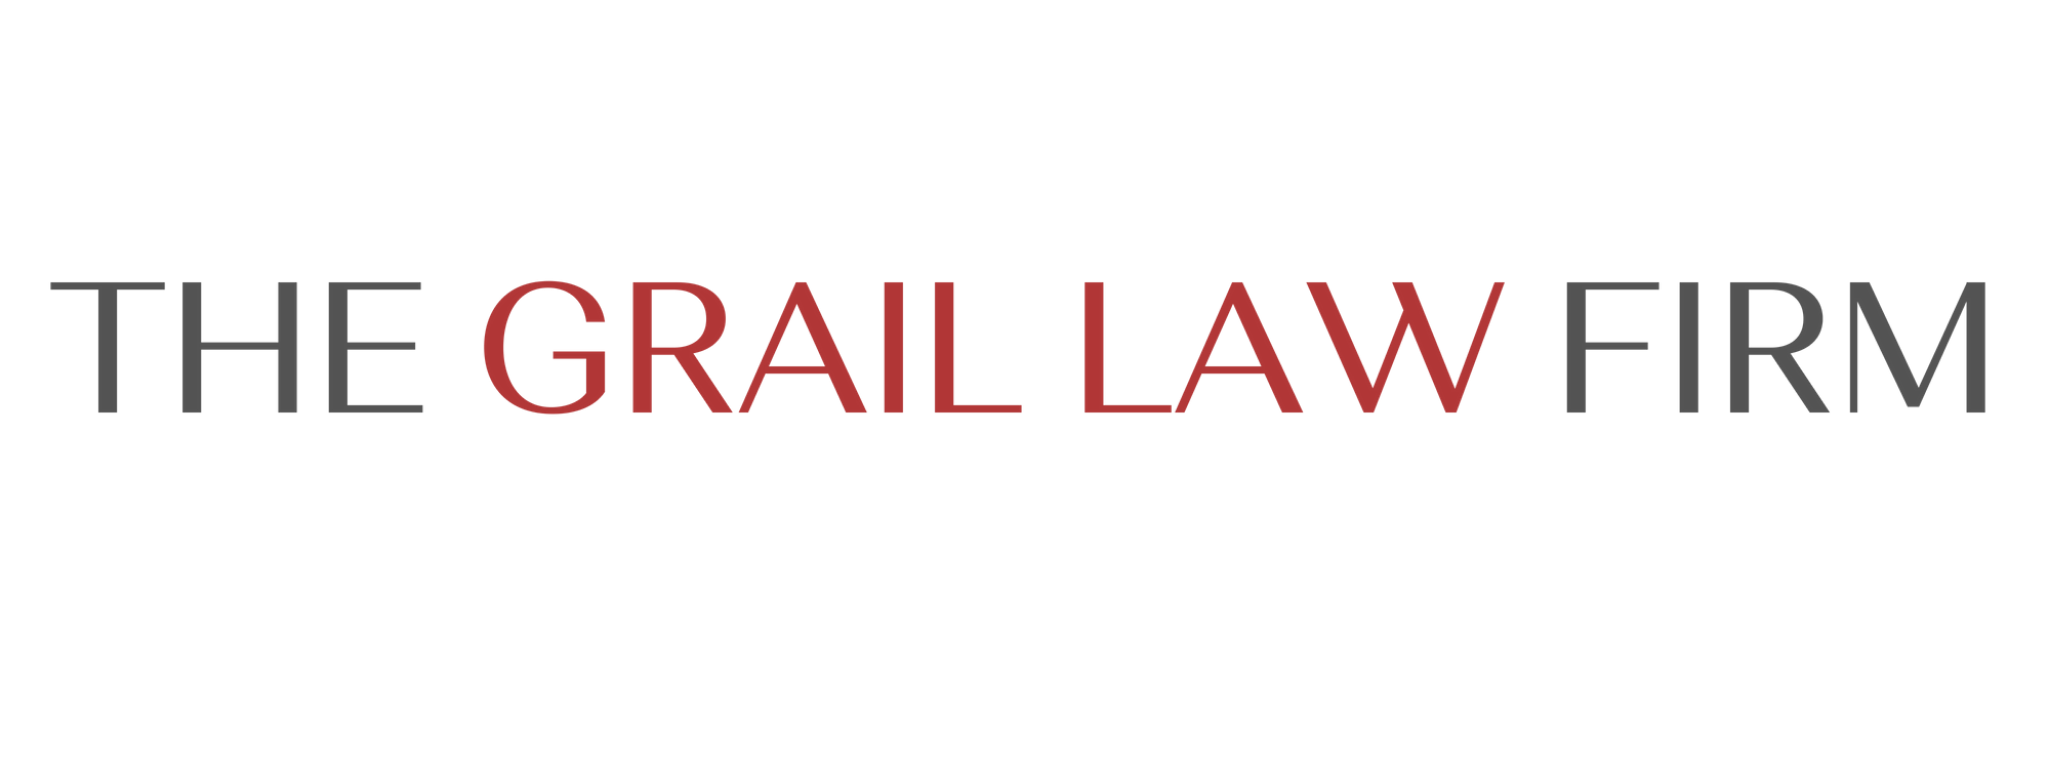 The Grail Law Firm + ' logo'